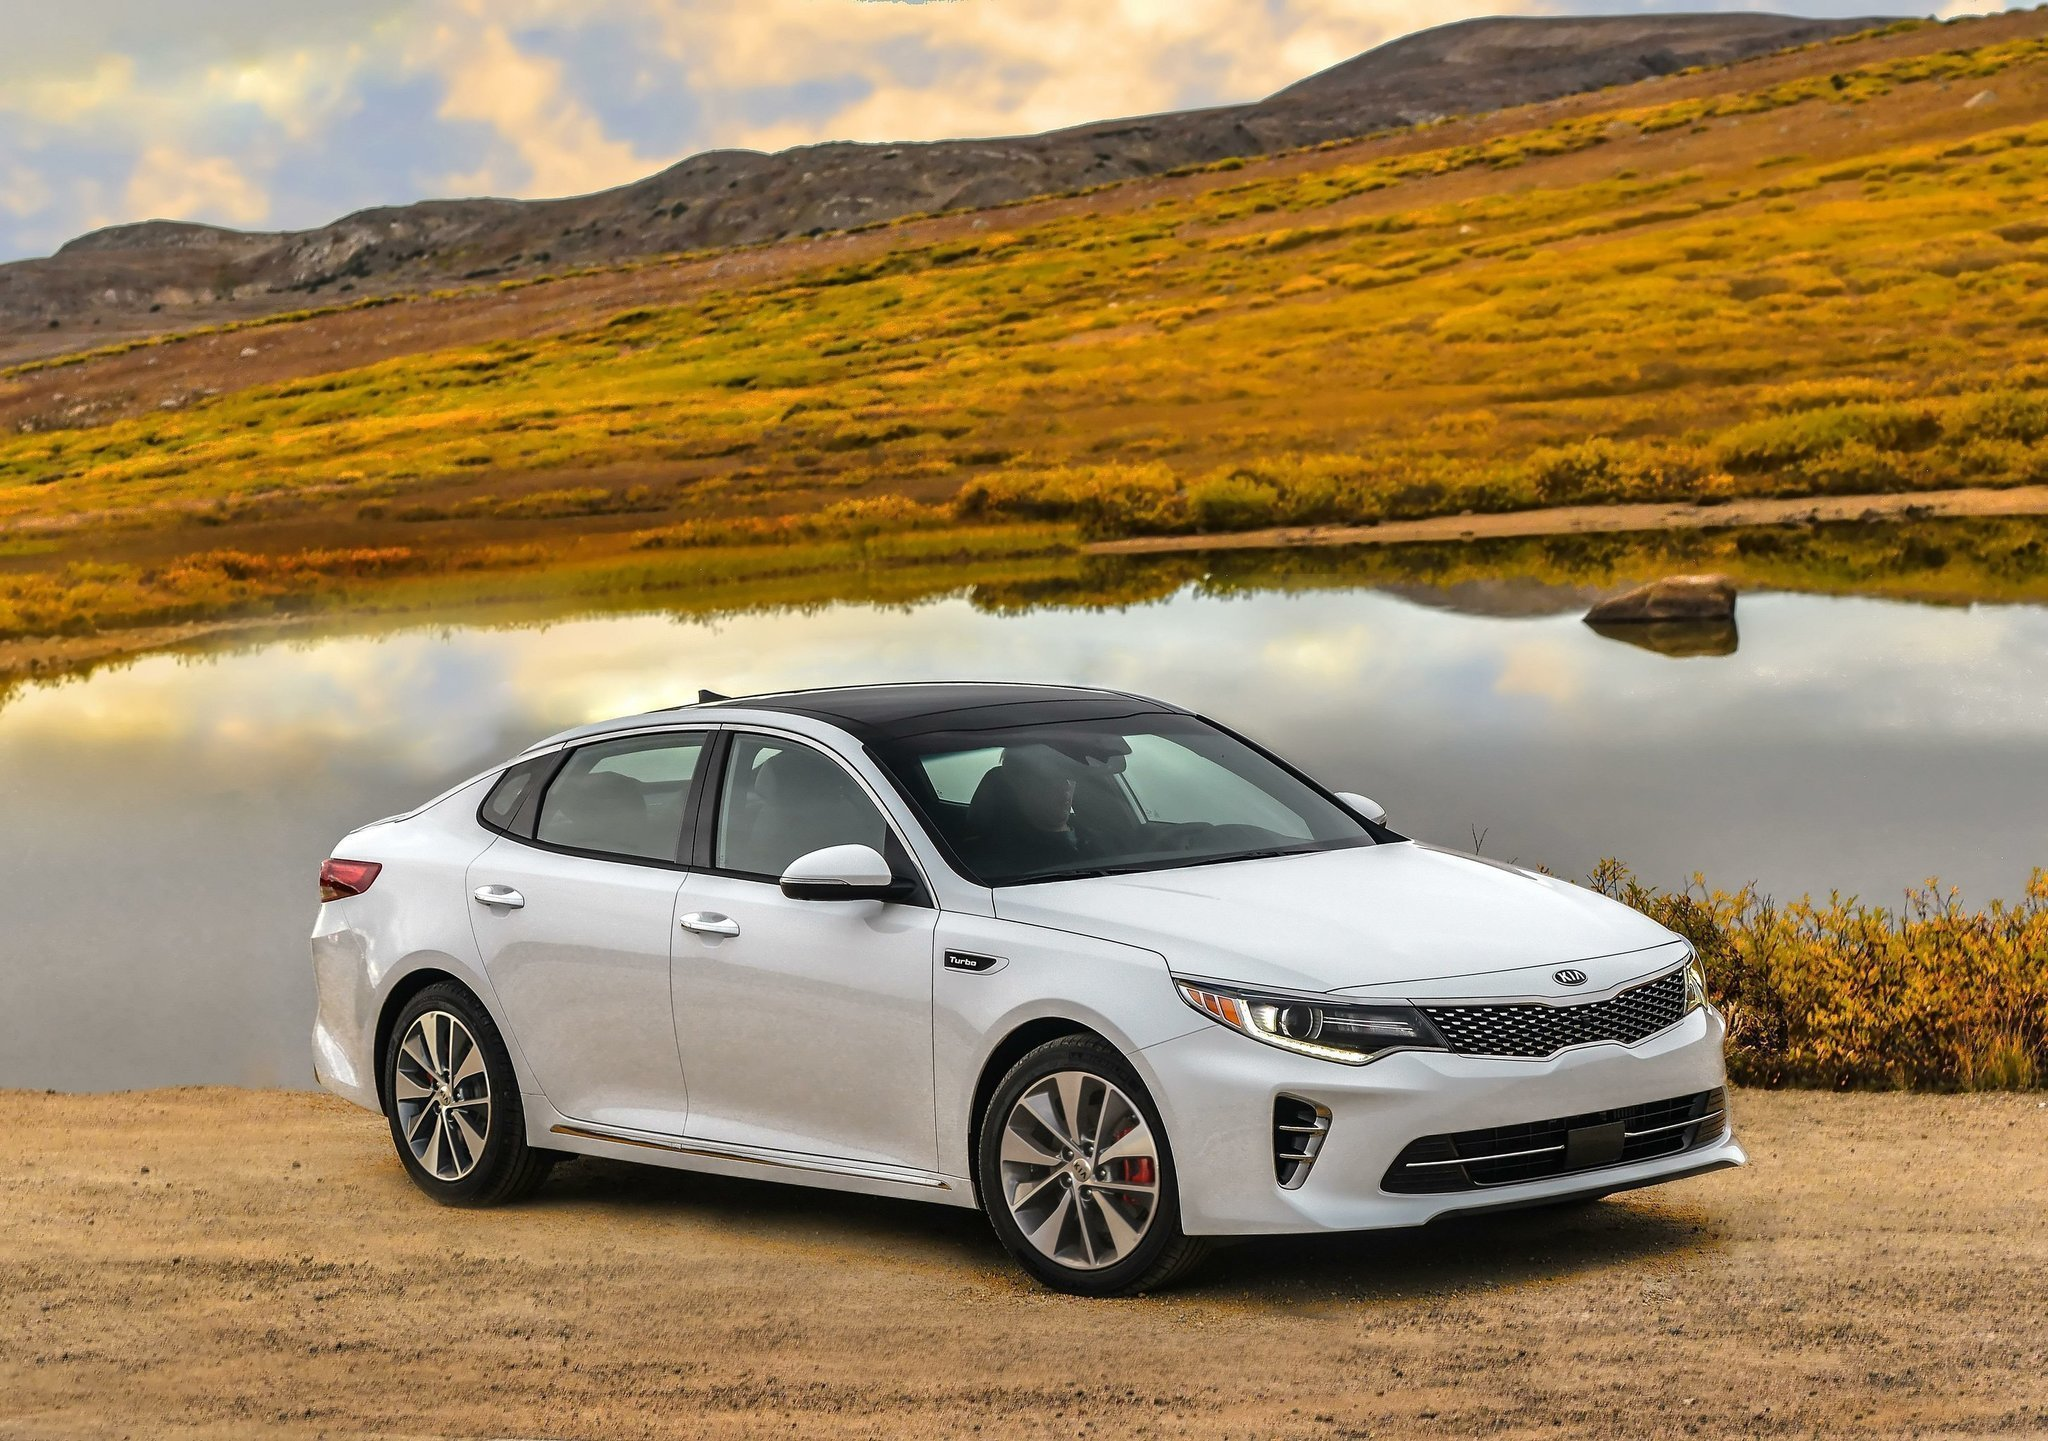 2016 Kia Optima Has Luxury Class Aspirations, Mainstream Price   The San  Diego Union Tribune